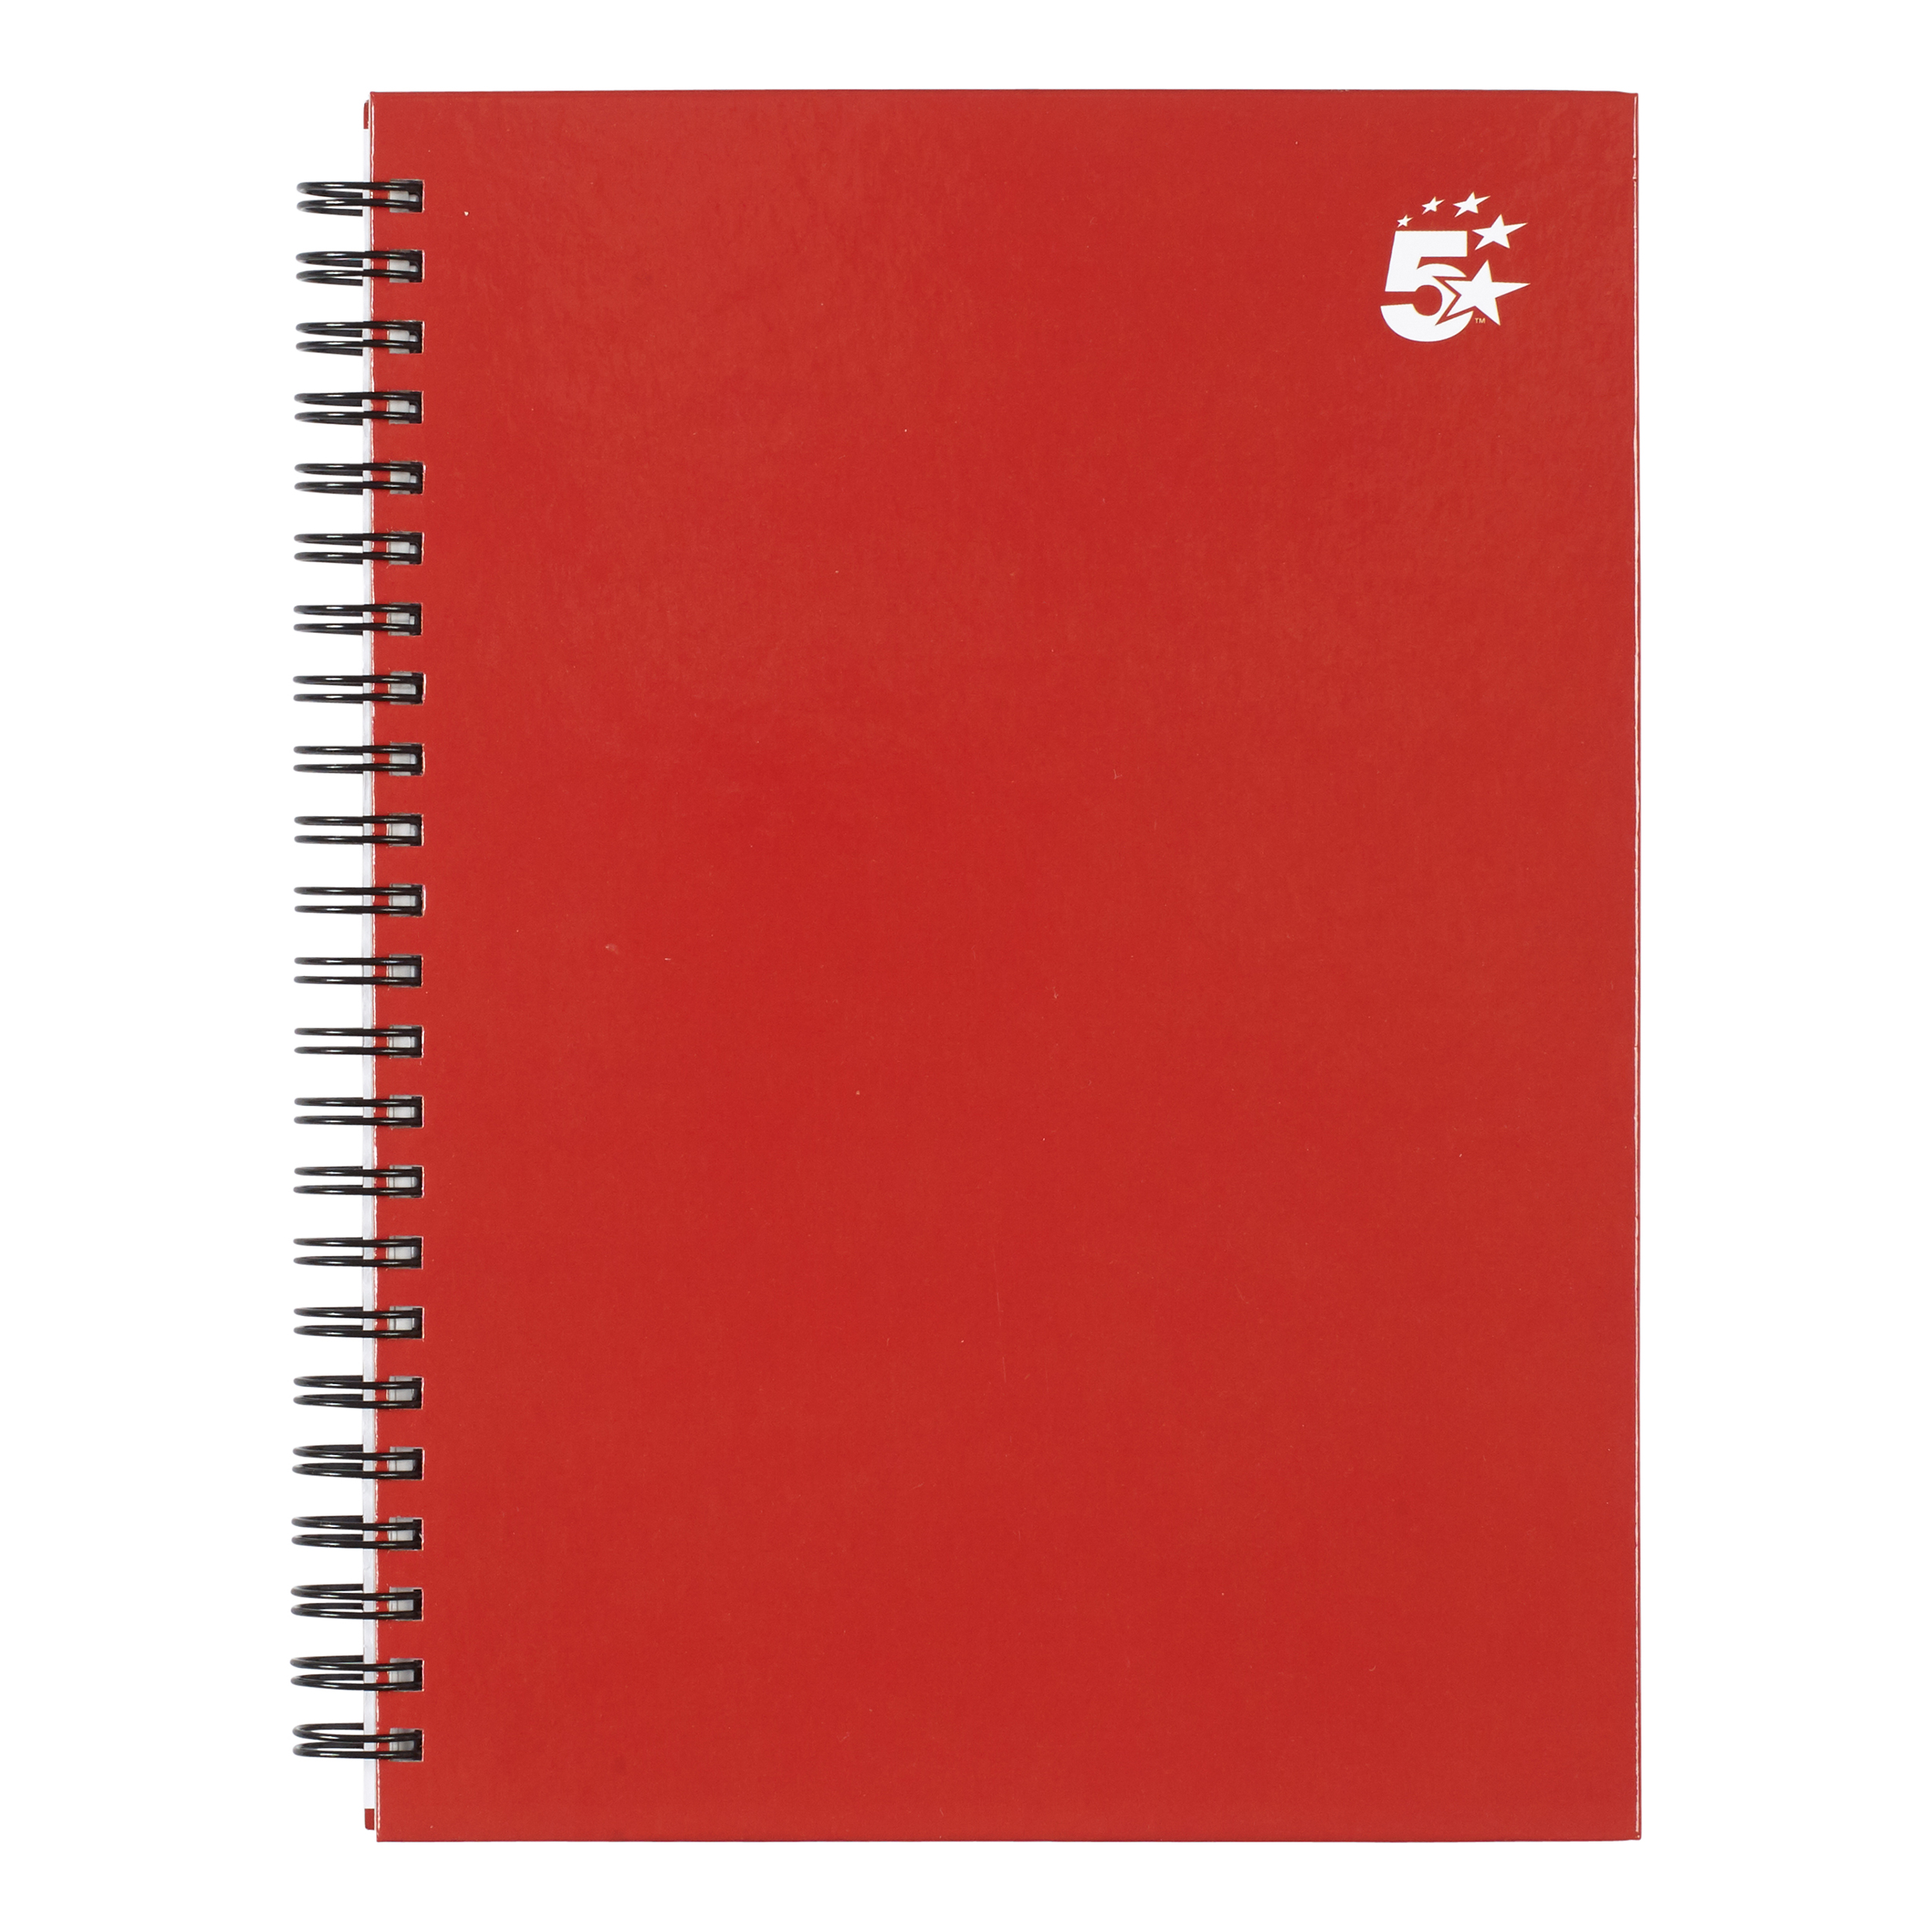 Paper pads or notebooks 5 Star Office Twinbound Hardback A5 140Pg Berry Ref 943445 Pack 5